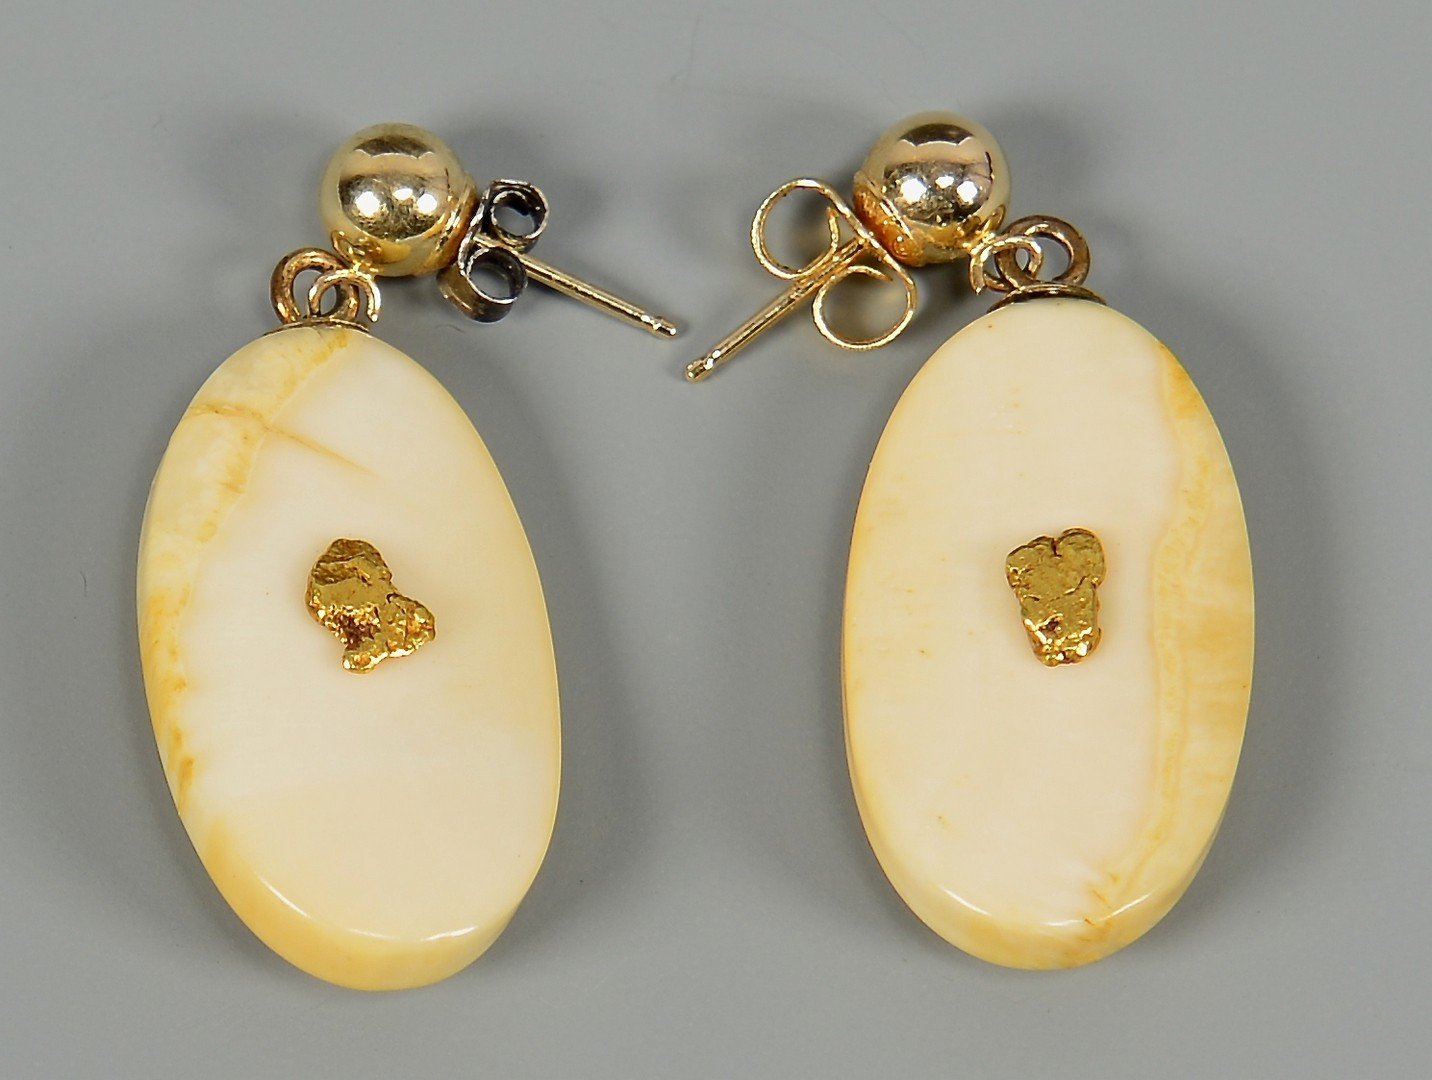 Lot 4010144 Alaskan Scrimshaw Ivory Amp Gold Nugget Jewelry